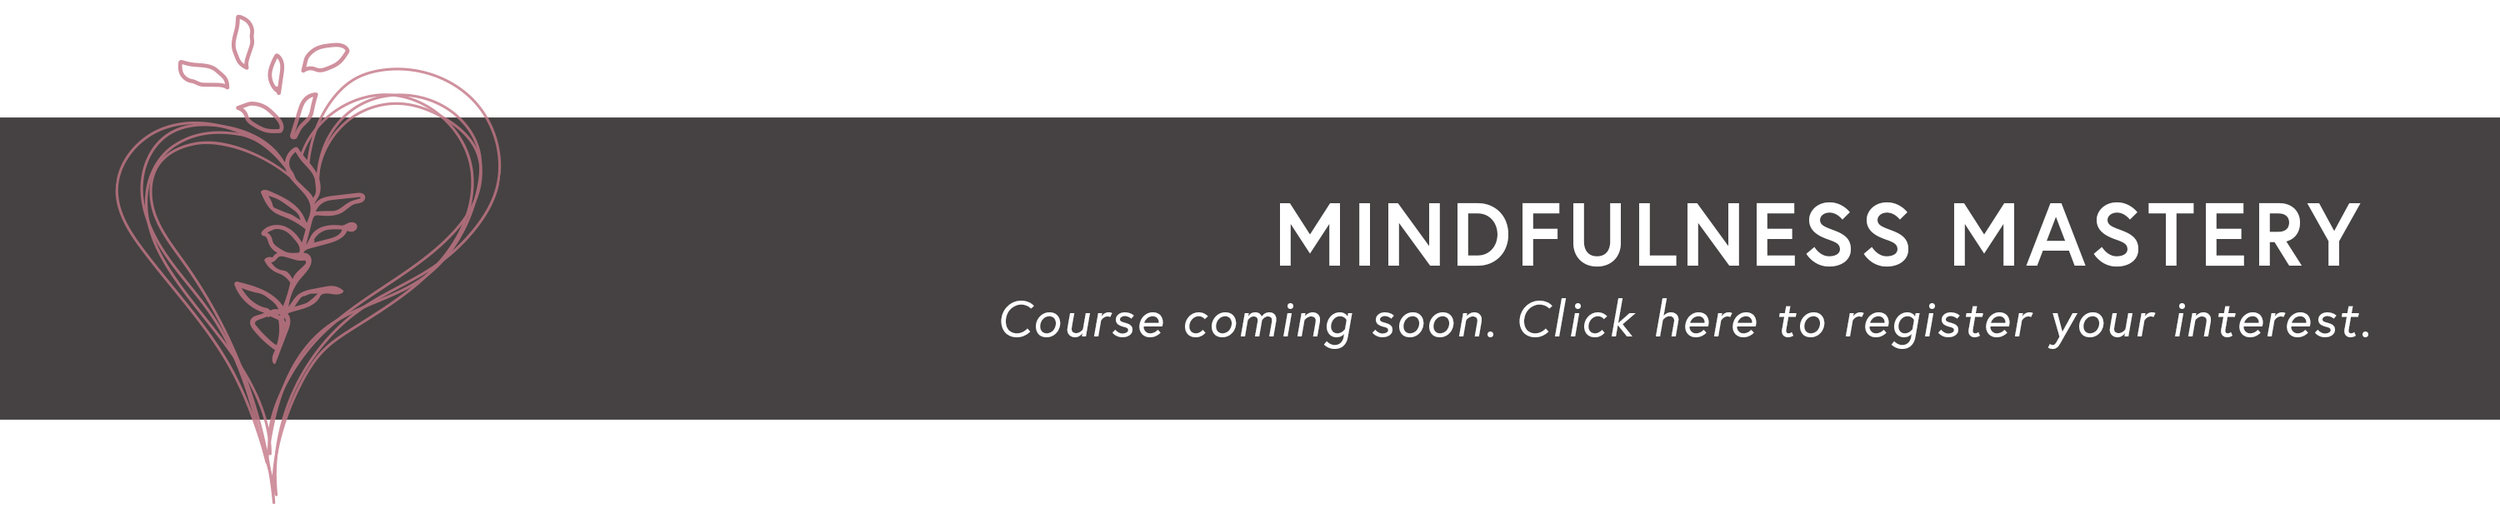 mindfulness-mastery-course-bannergraphic-001.jpg